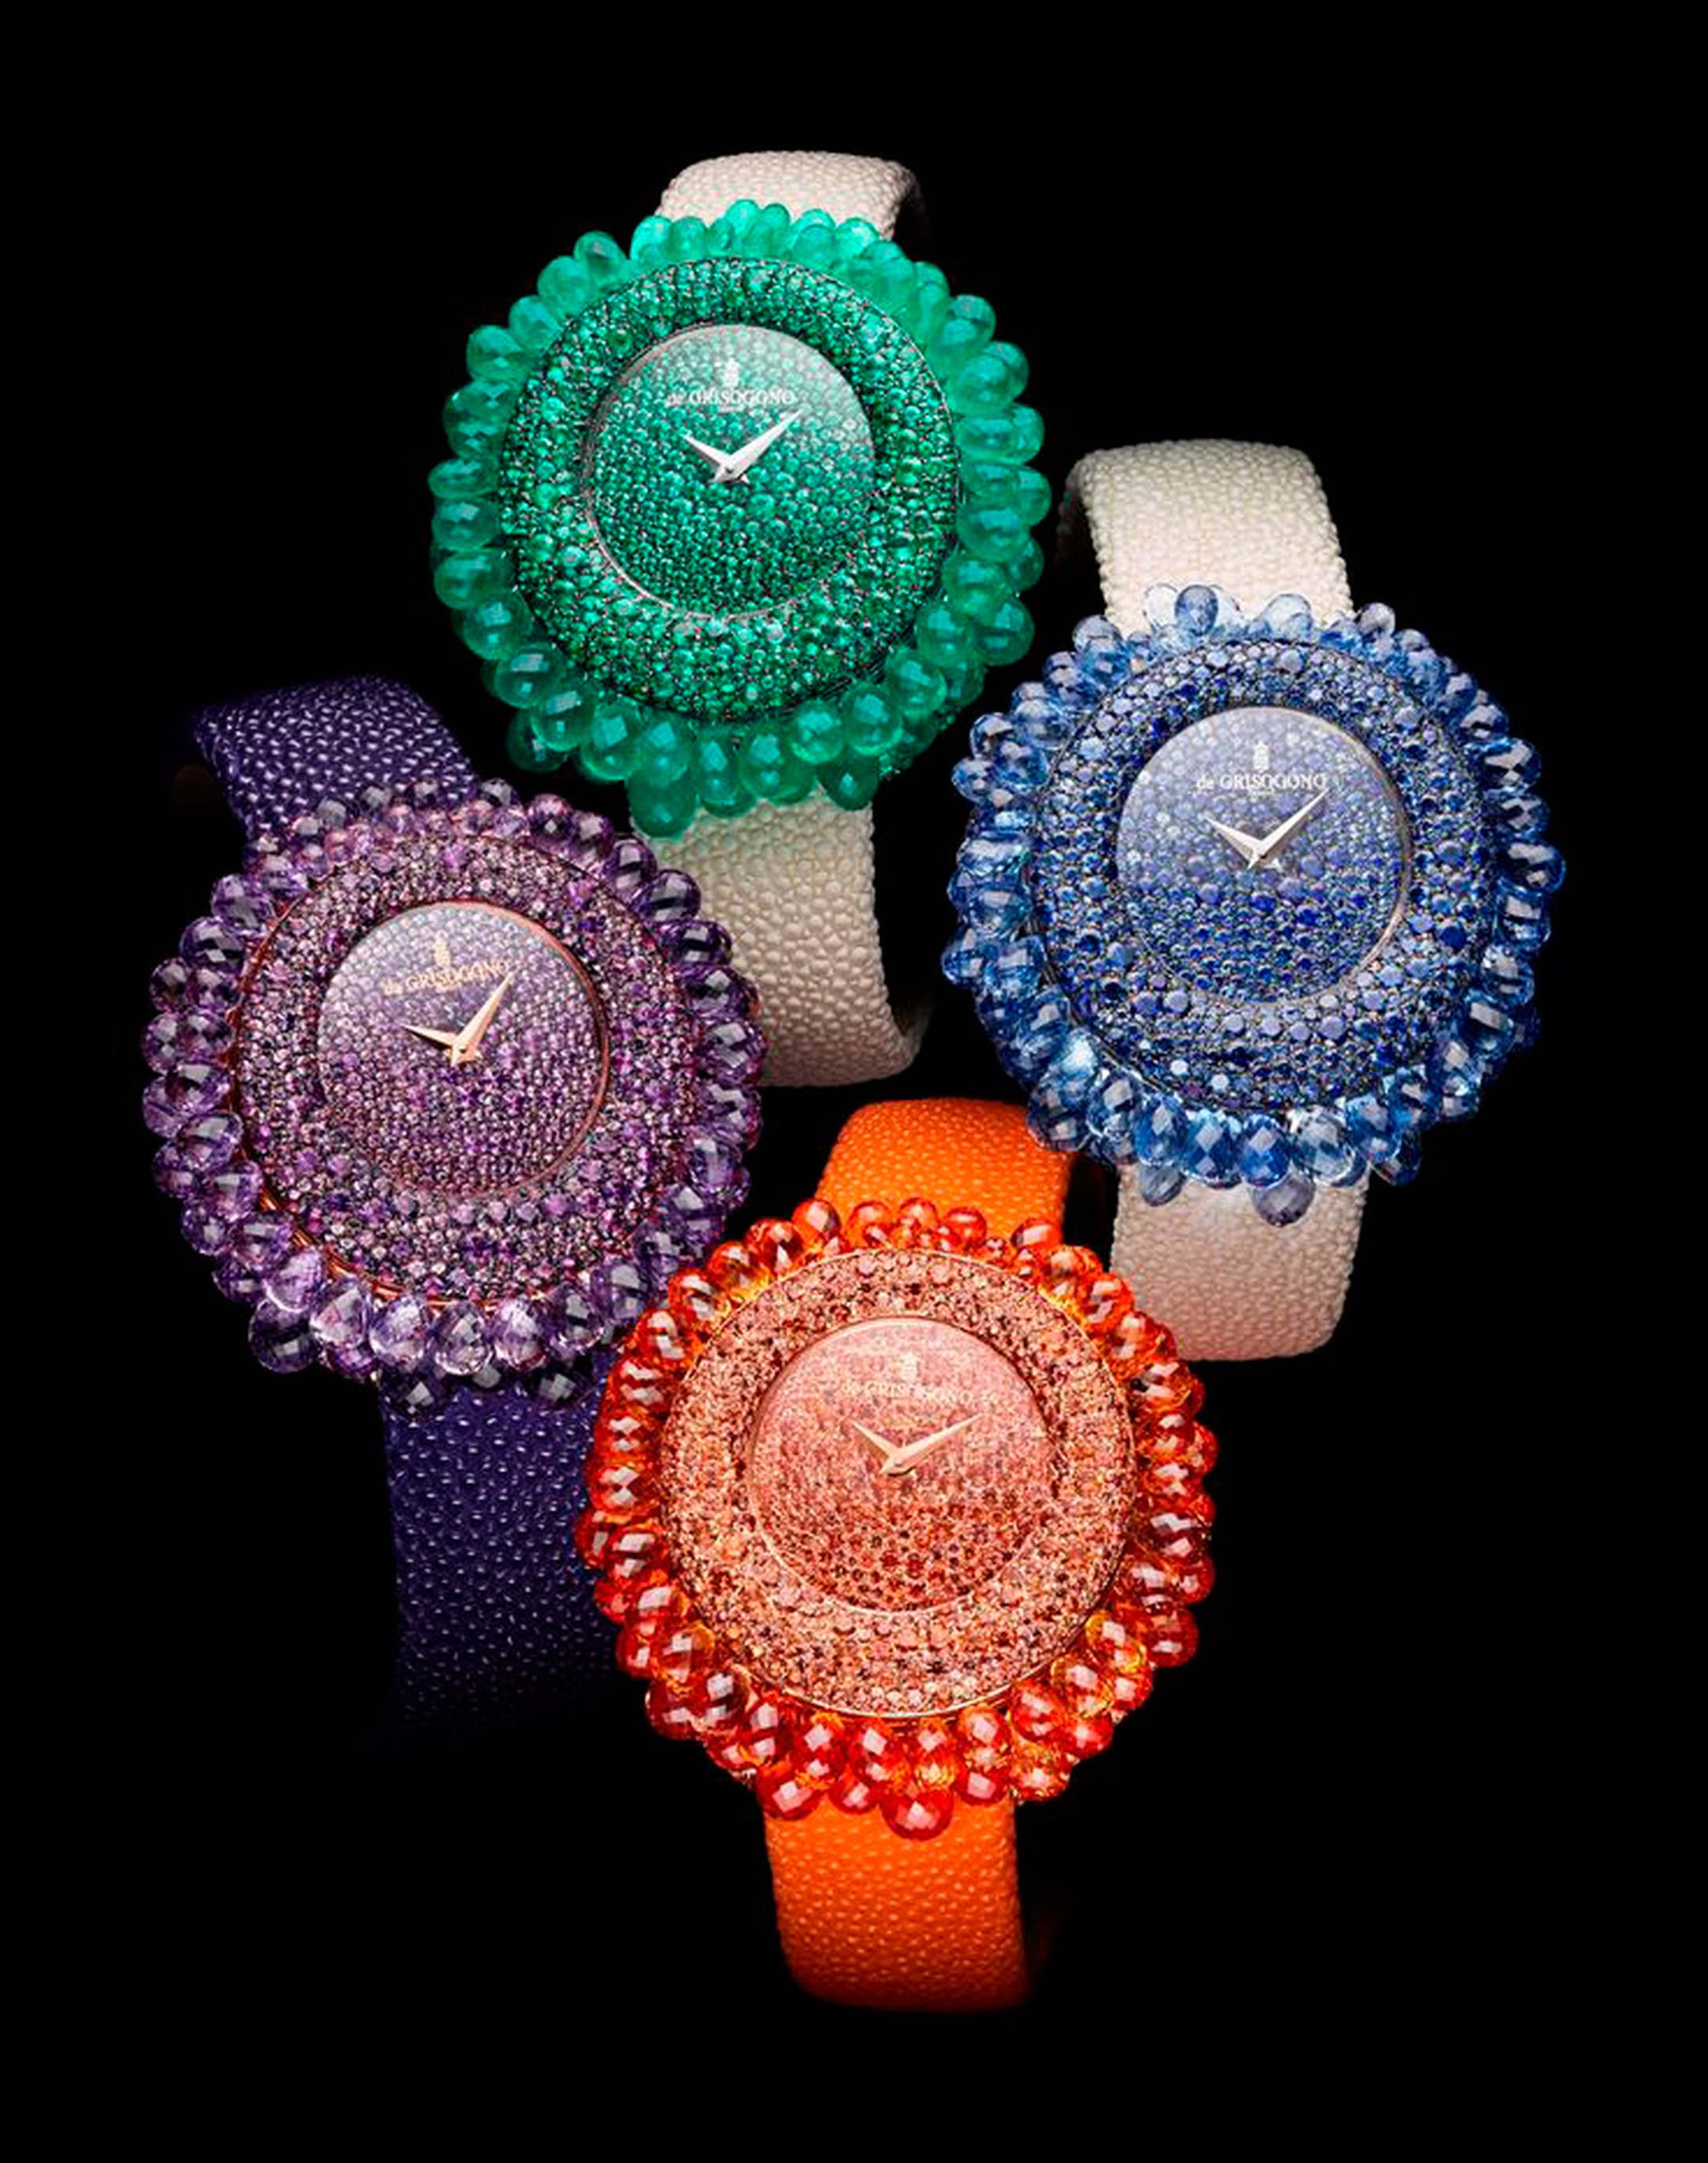 de GRISOGONO Grappoli collection featrues mouth-watering high jewellery watches. Like a sunflower bursting with colourful gemstones, the Grappoli model is the fruit of expert gem-setters and stone cutters patiently cutting and setting each and every one o